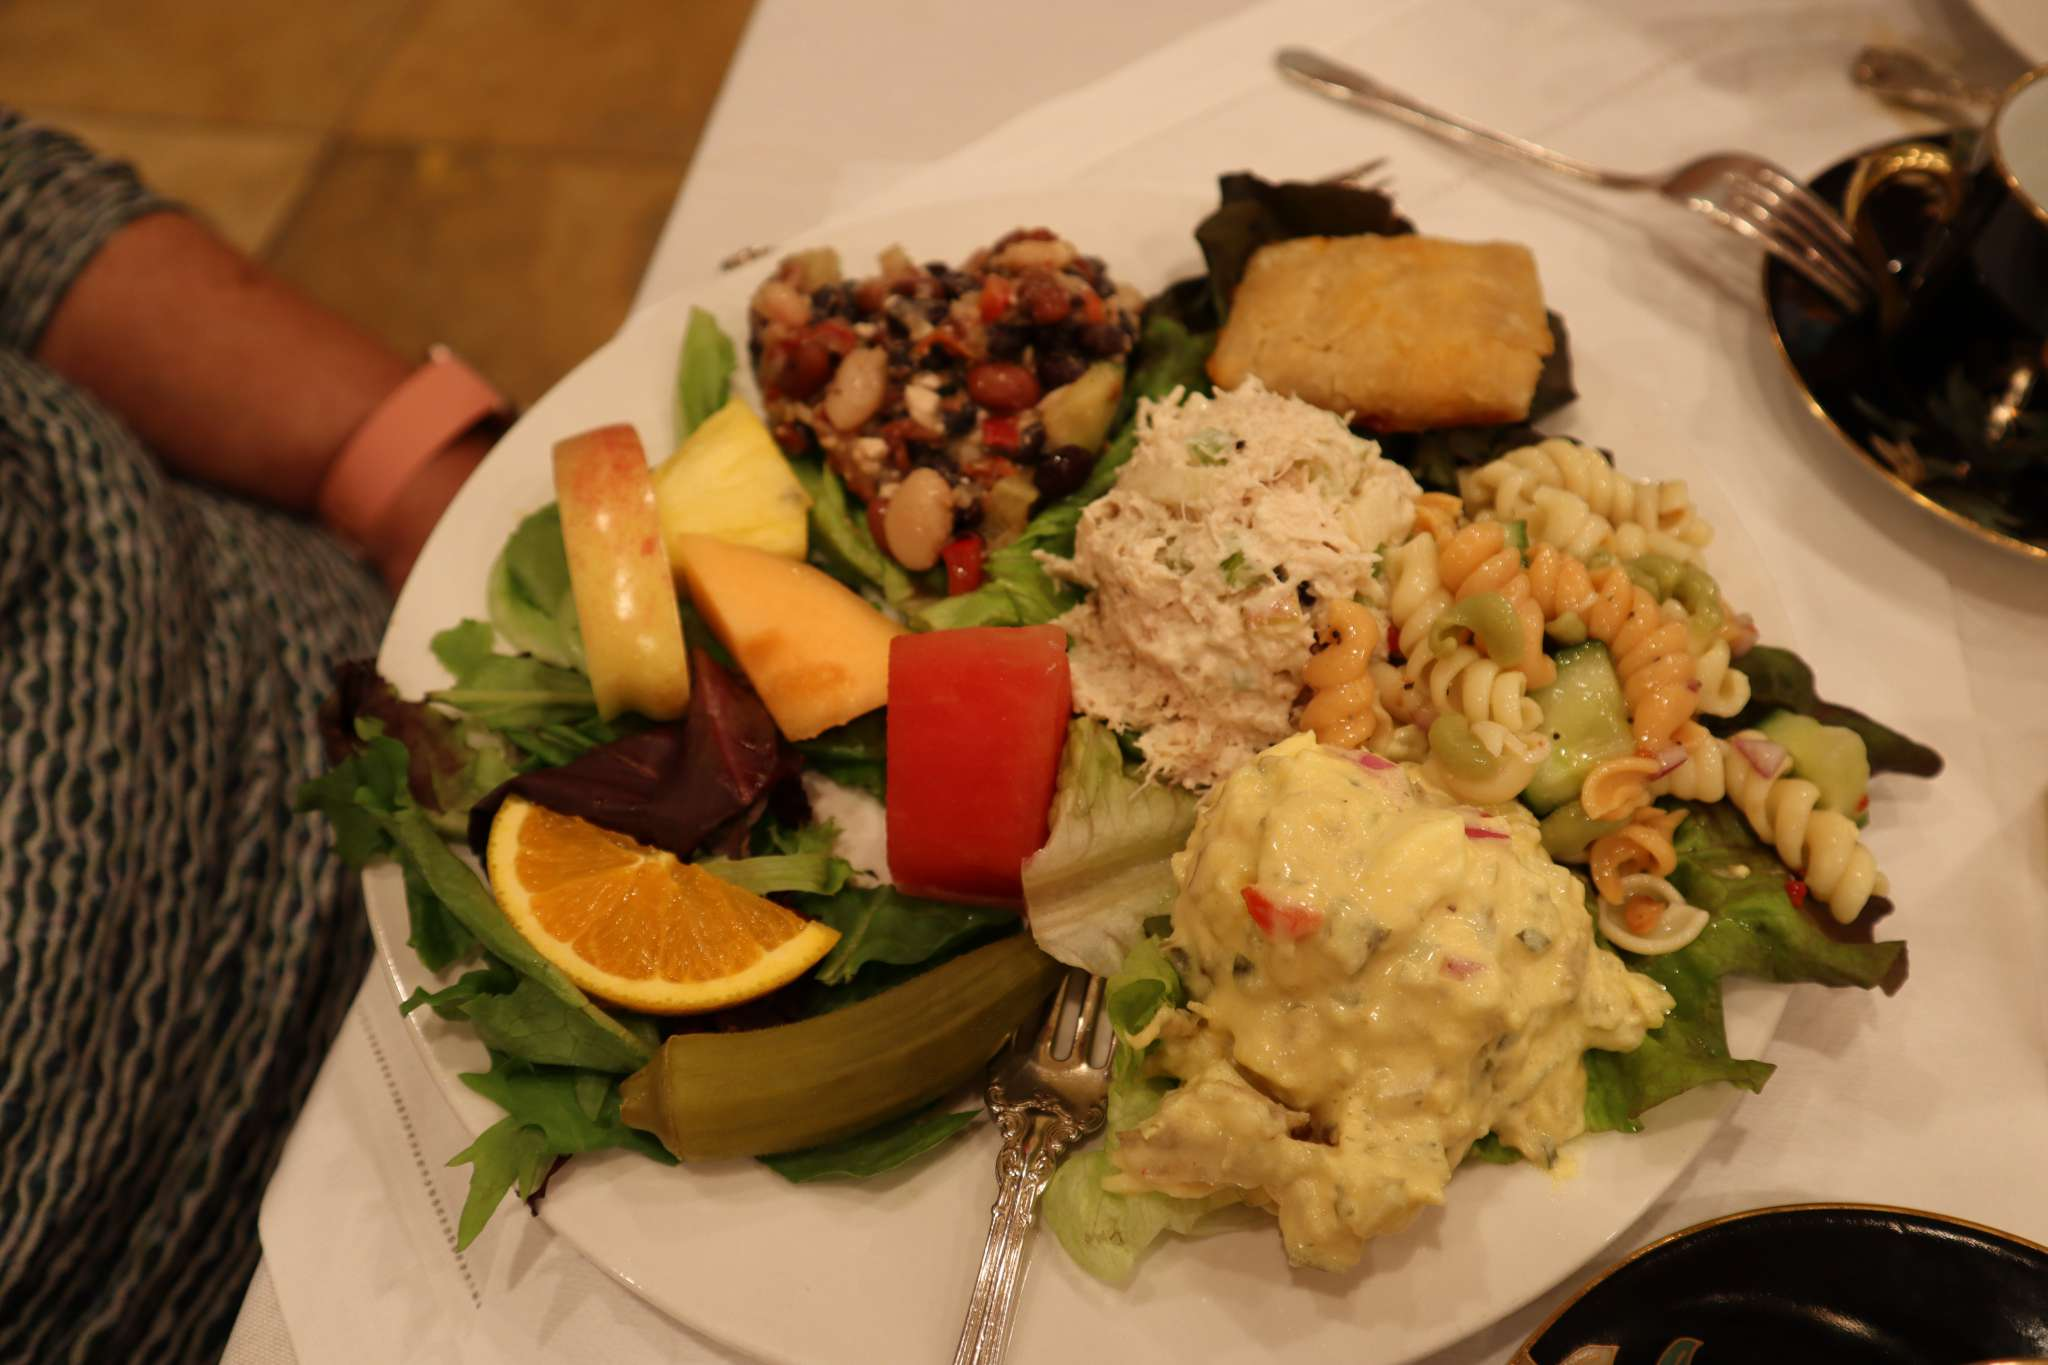 A plate of food on a table, with Cottage Tea Room